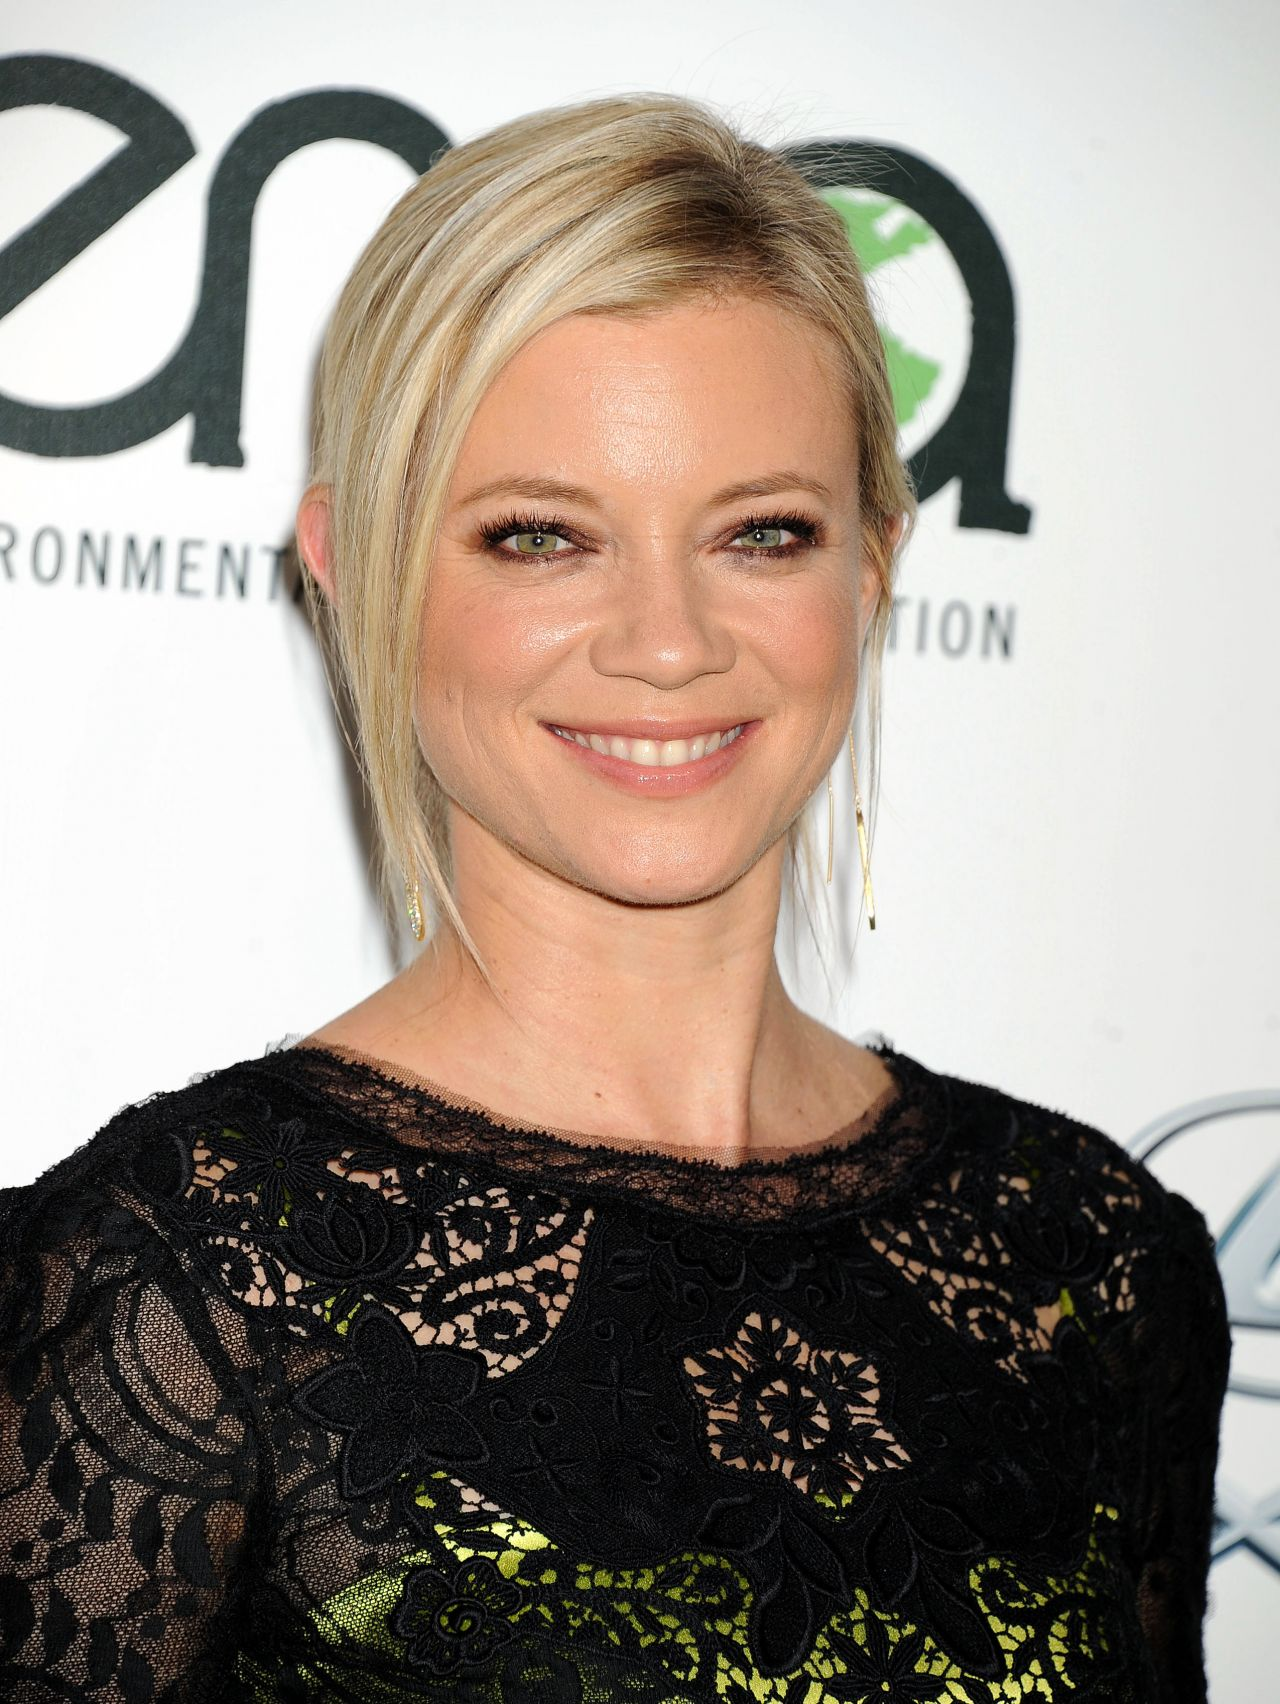 Amy Smart Hot Images amy smart red carpet photos - 23rd annual environmental